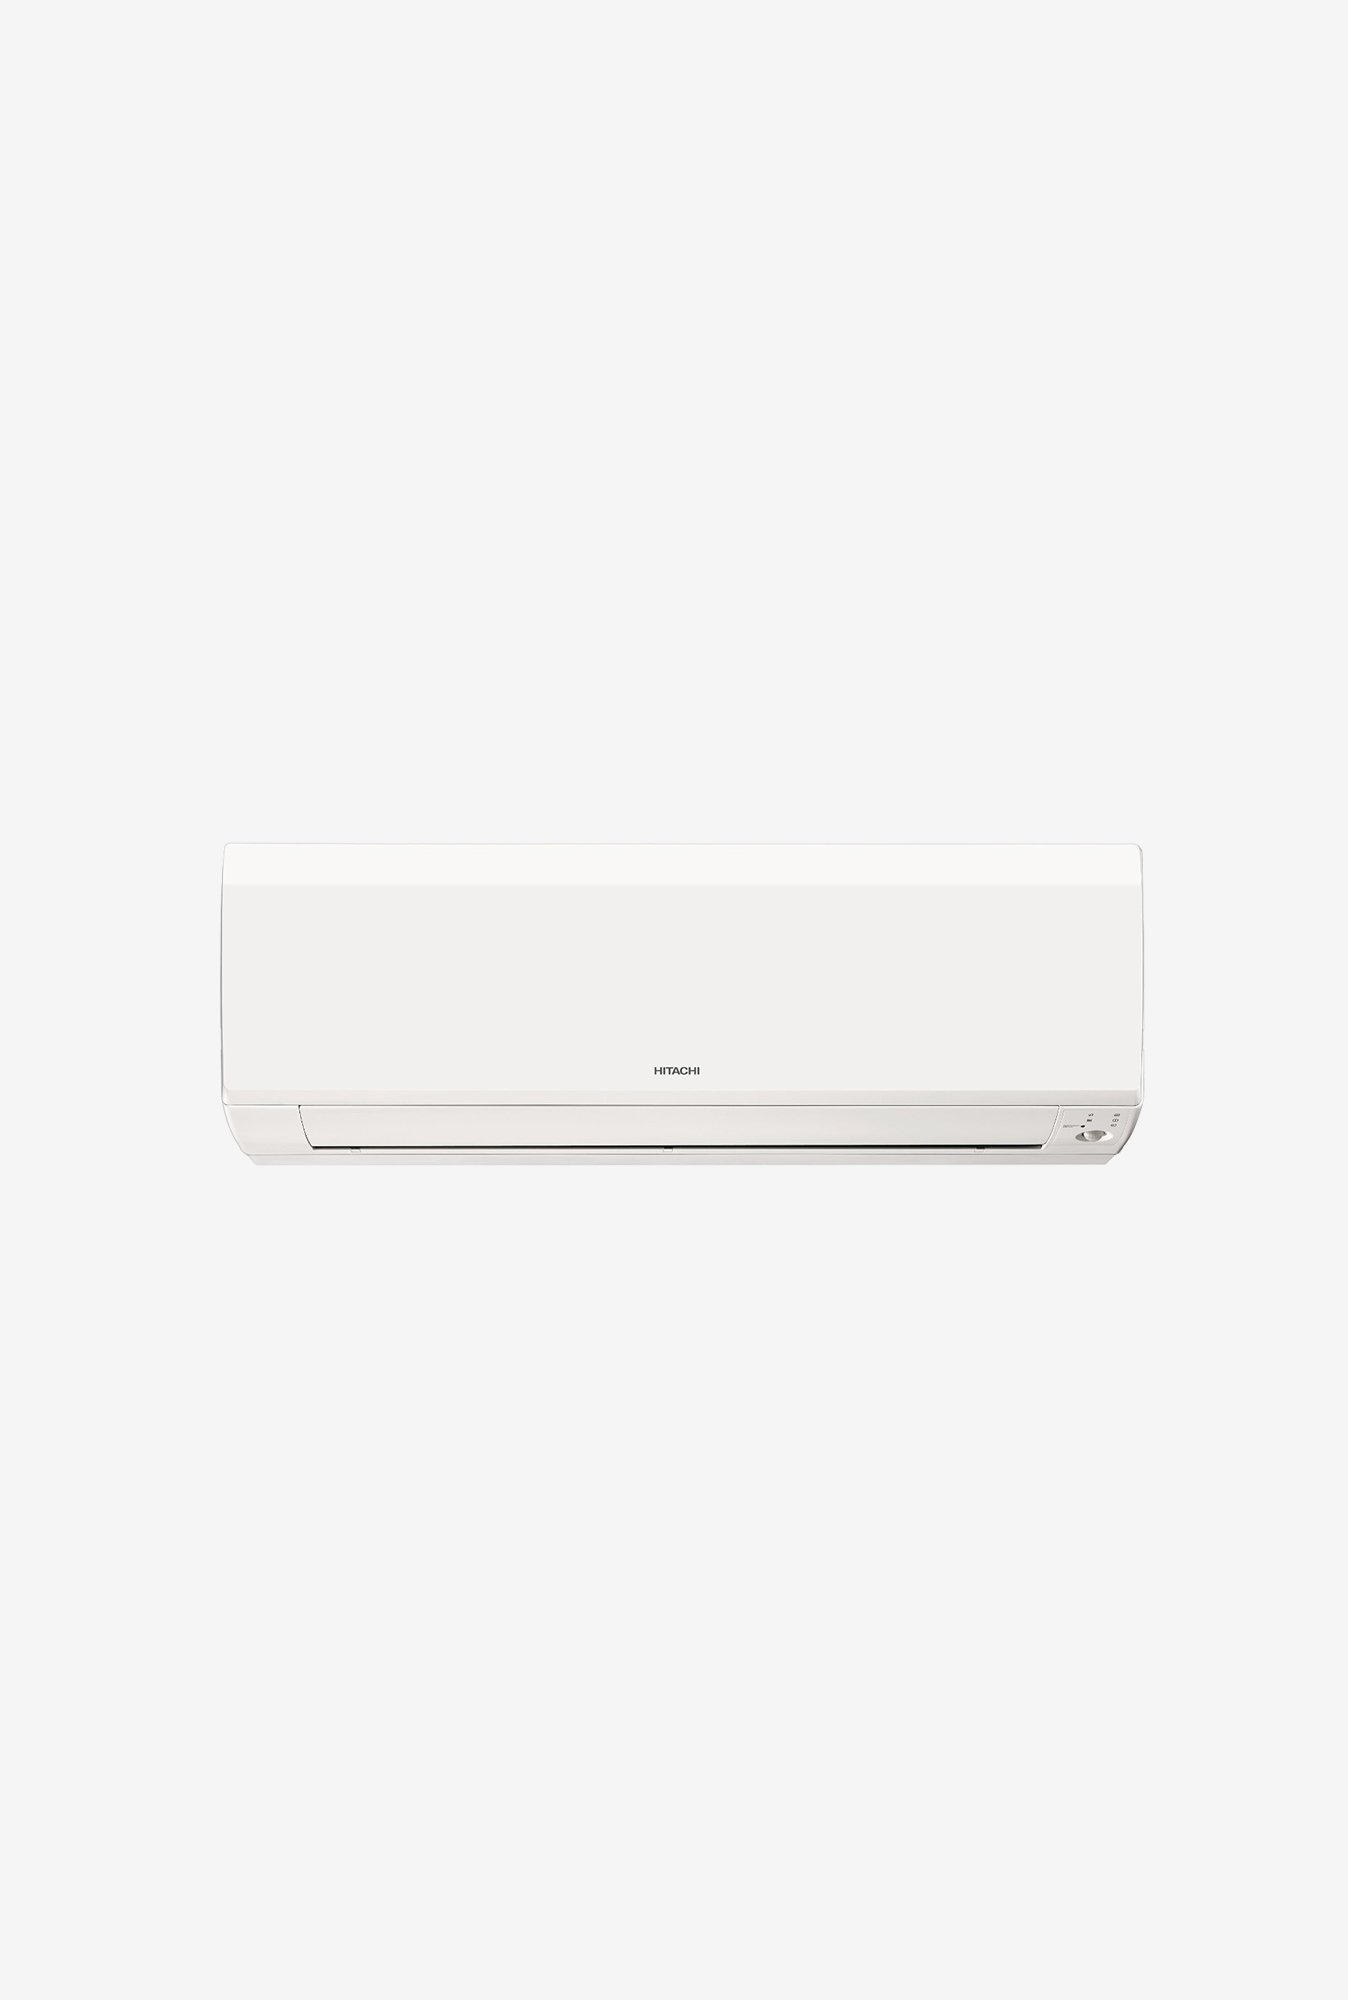 Hitachi Zunoh 3300f RAU318IWD 1.5 Ton 3 Star Split AC Copper